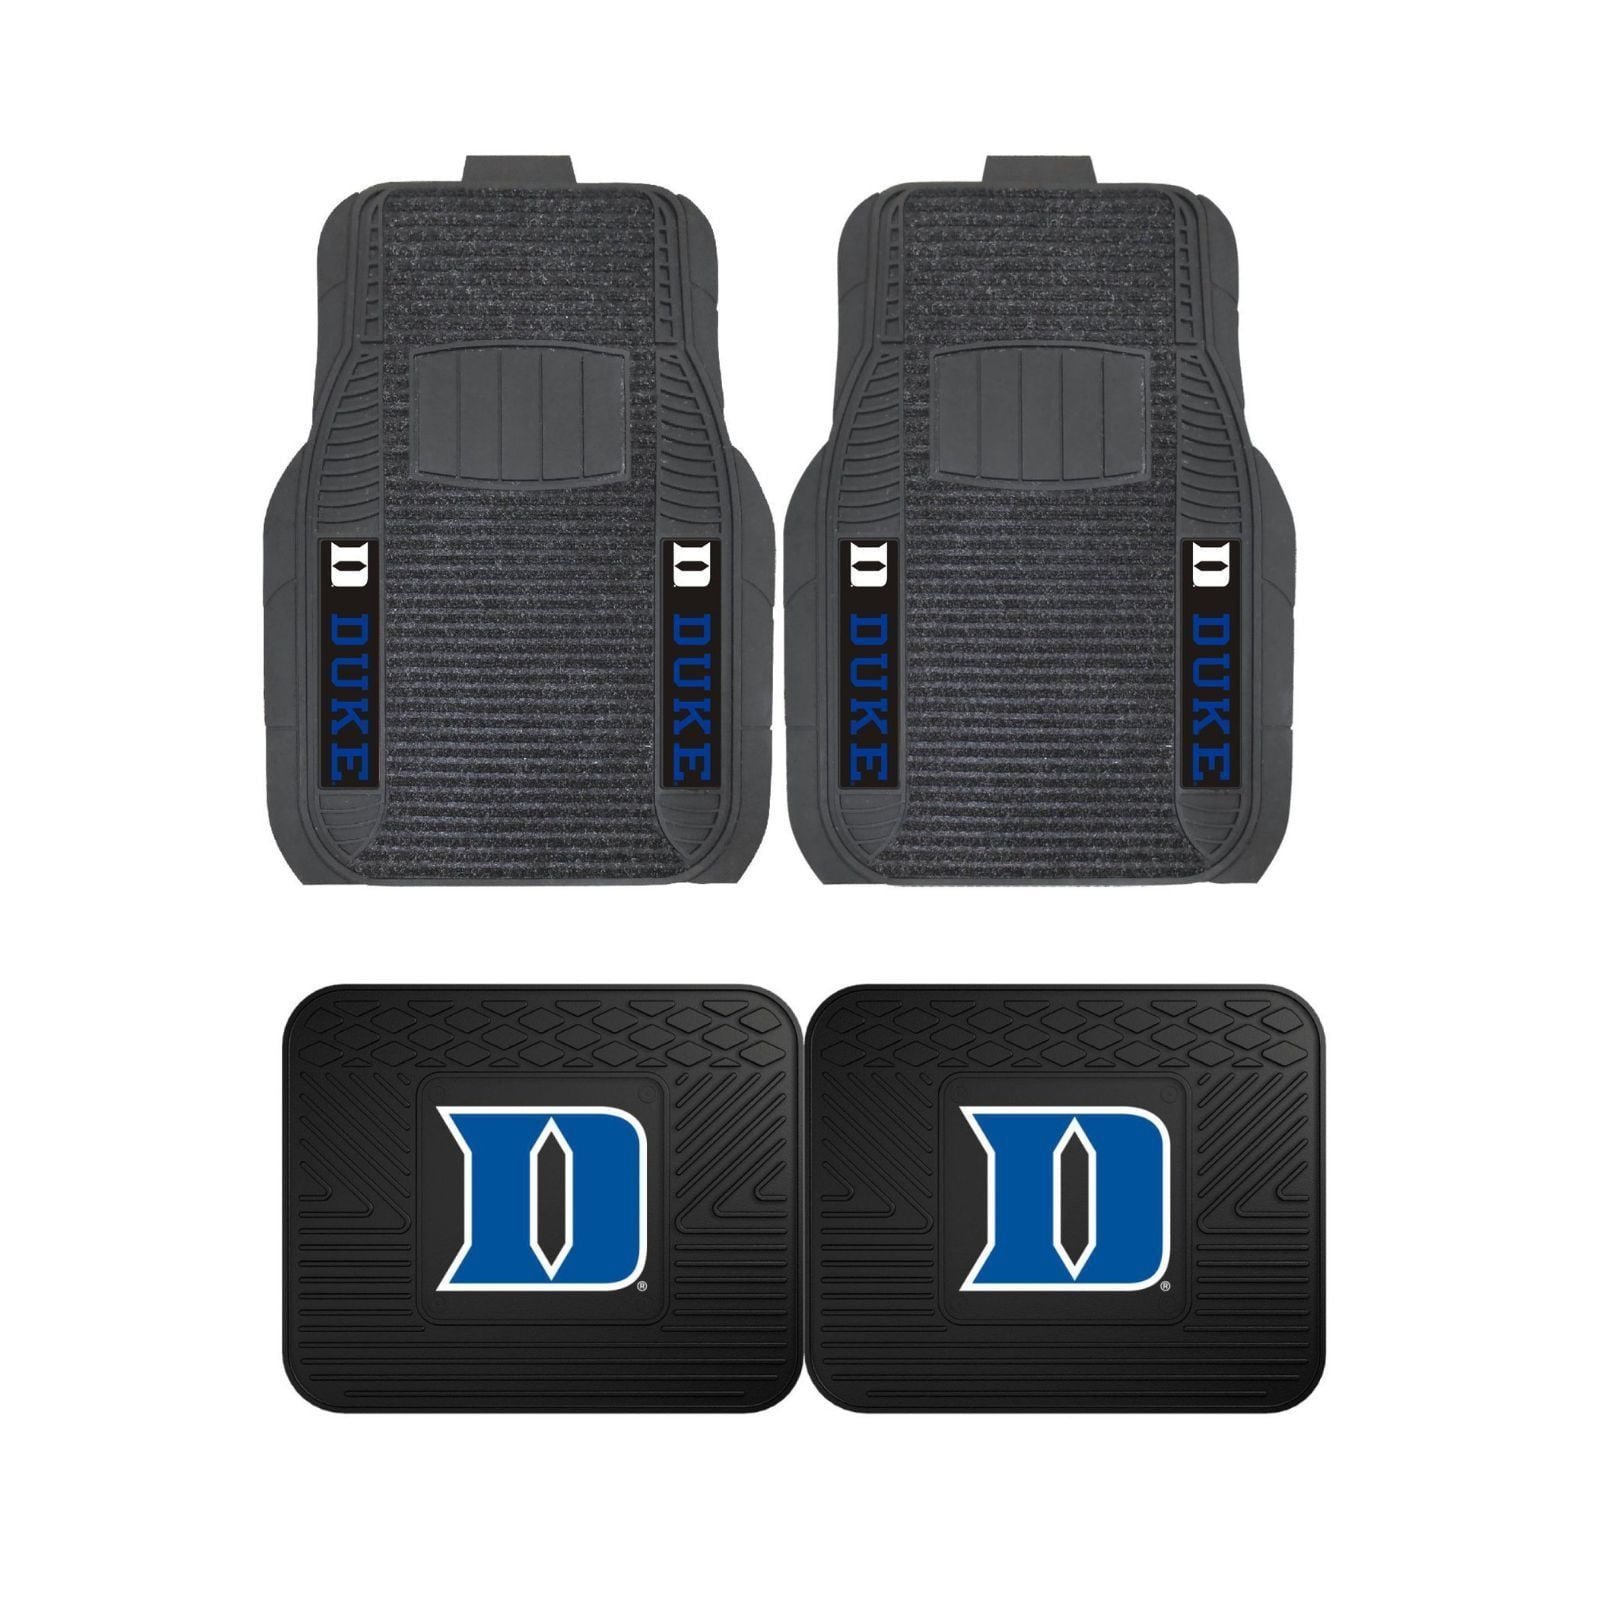 Duke Blue Devils Front (Vinyl/Carpet) & Rear (Vinyl) Car Floor Mats